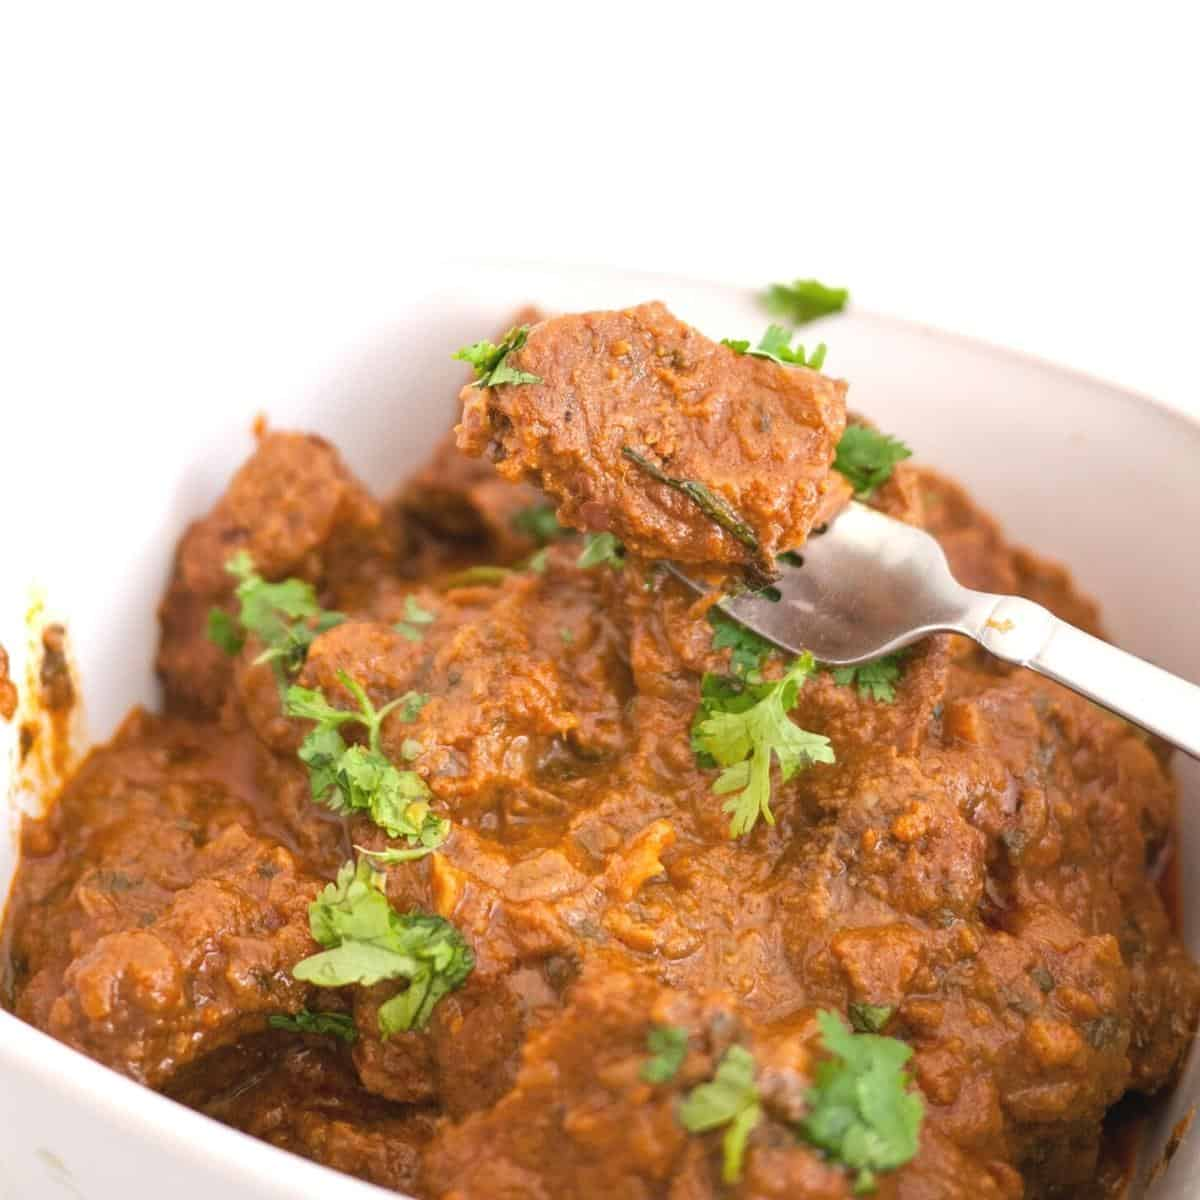 Beef curry in a white serving dish.